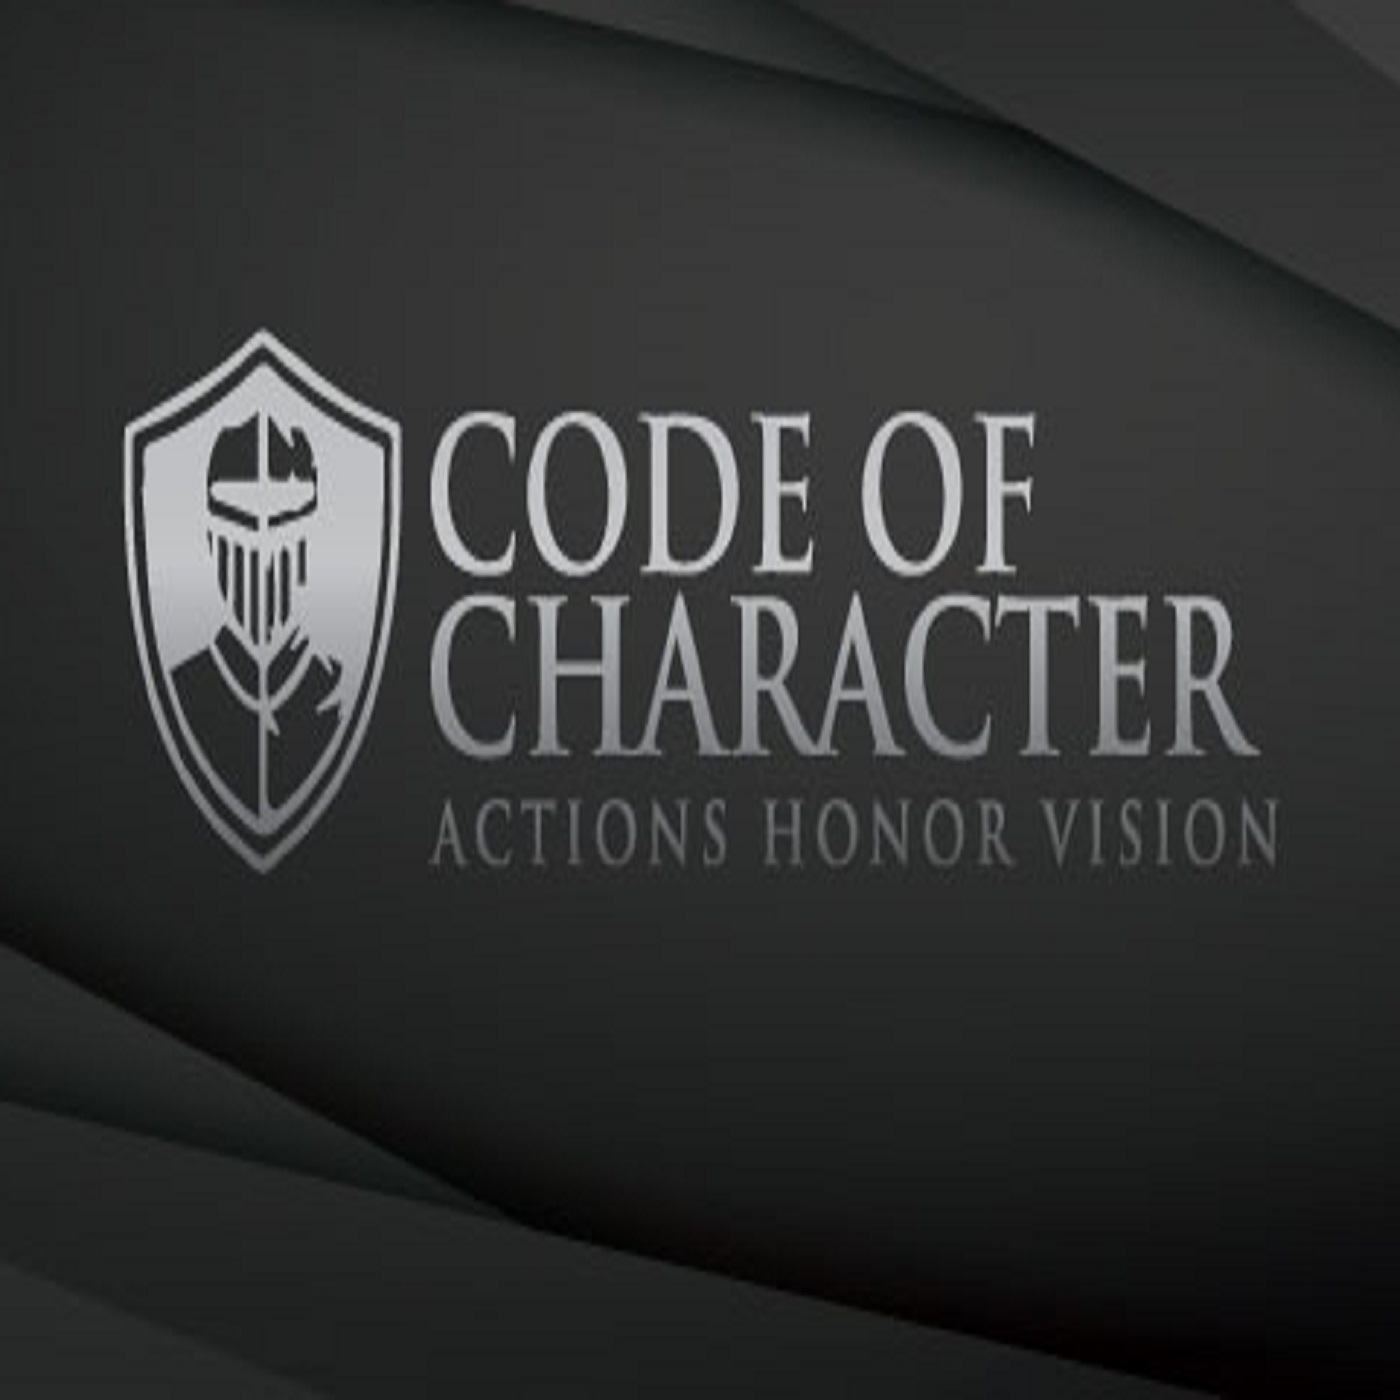 Code of Character | ACTIONS HONOR VISION | Building a Better Society by Building Great Men show art